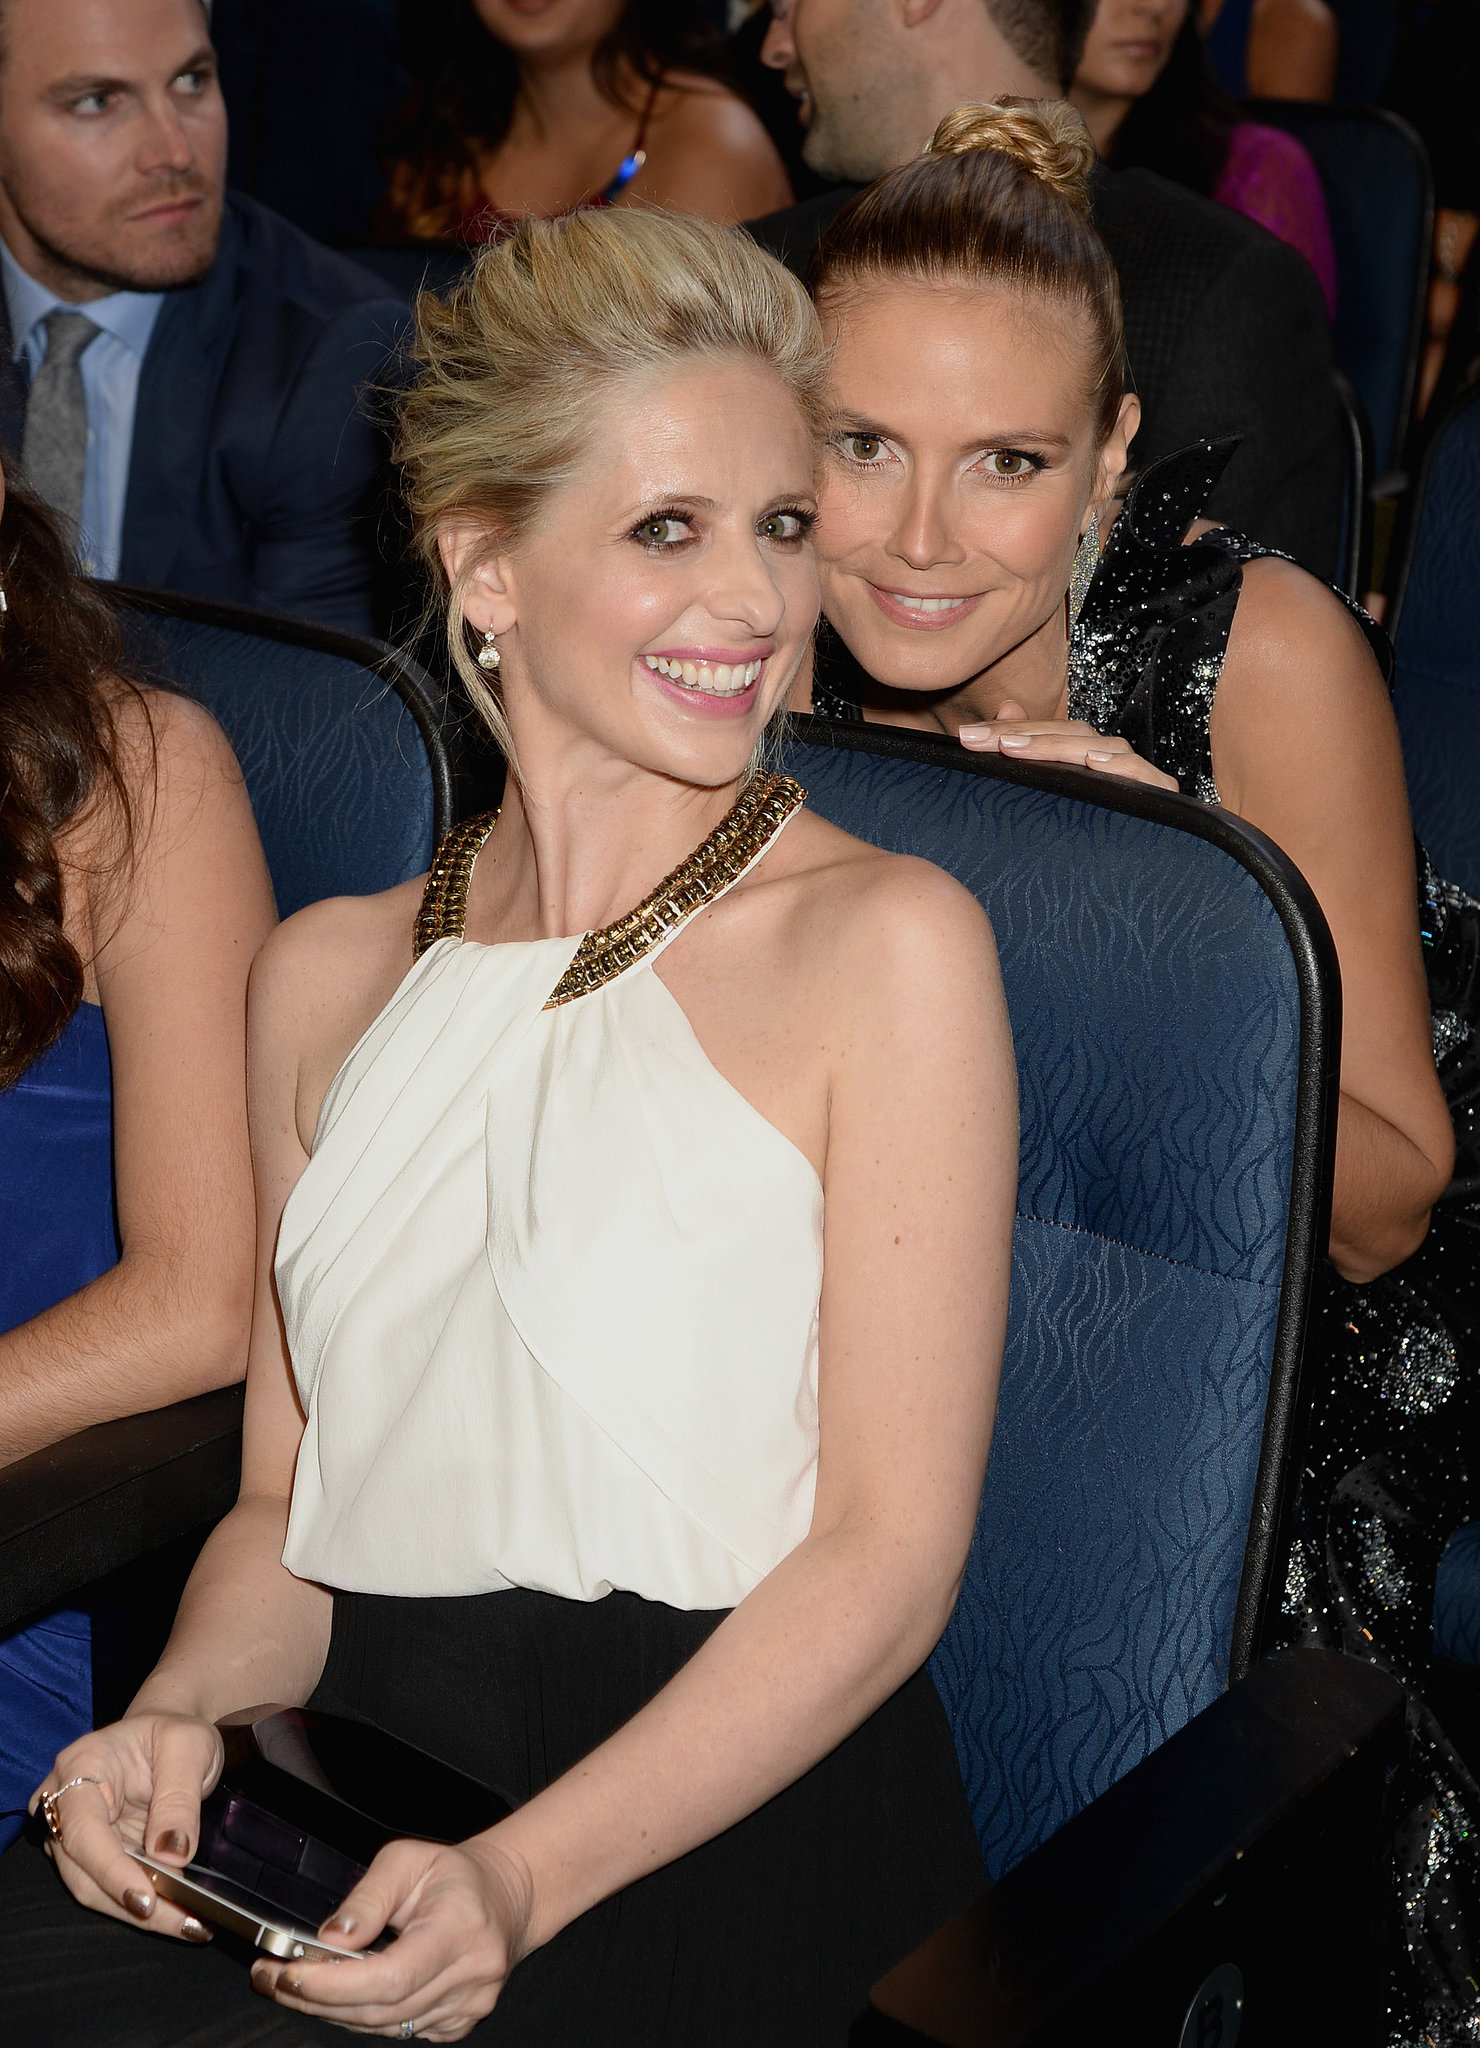 At the People's Choice Awards, Sarah Michelle Gellar got up close and personal with Heidi Klum.